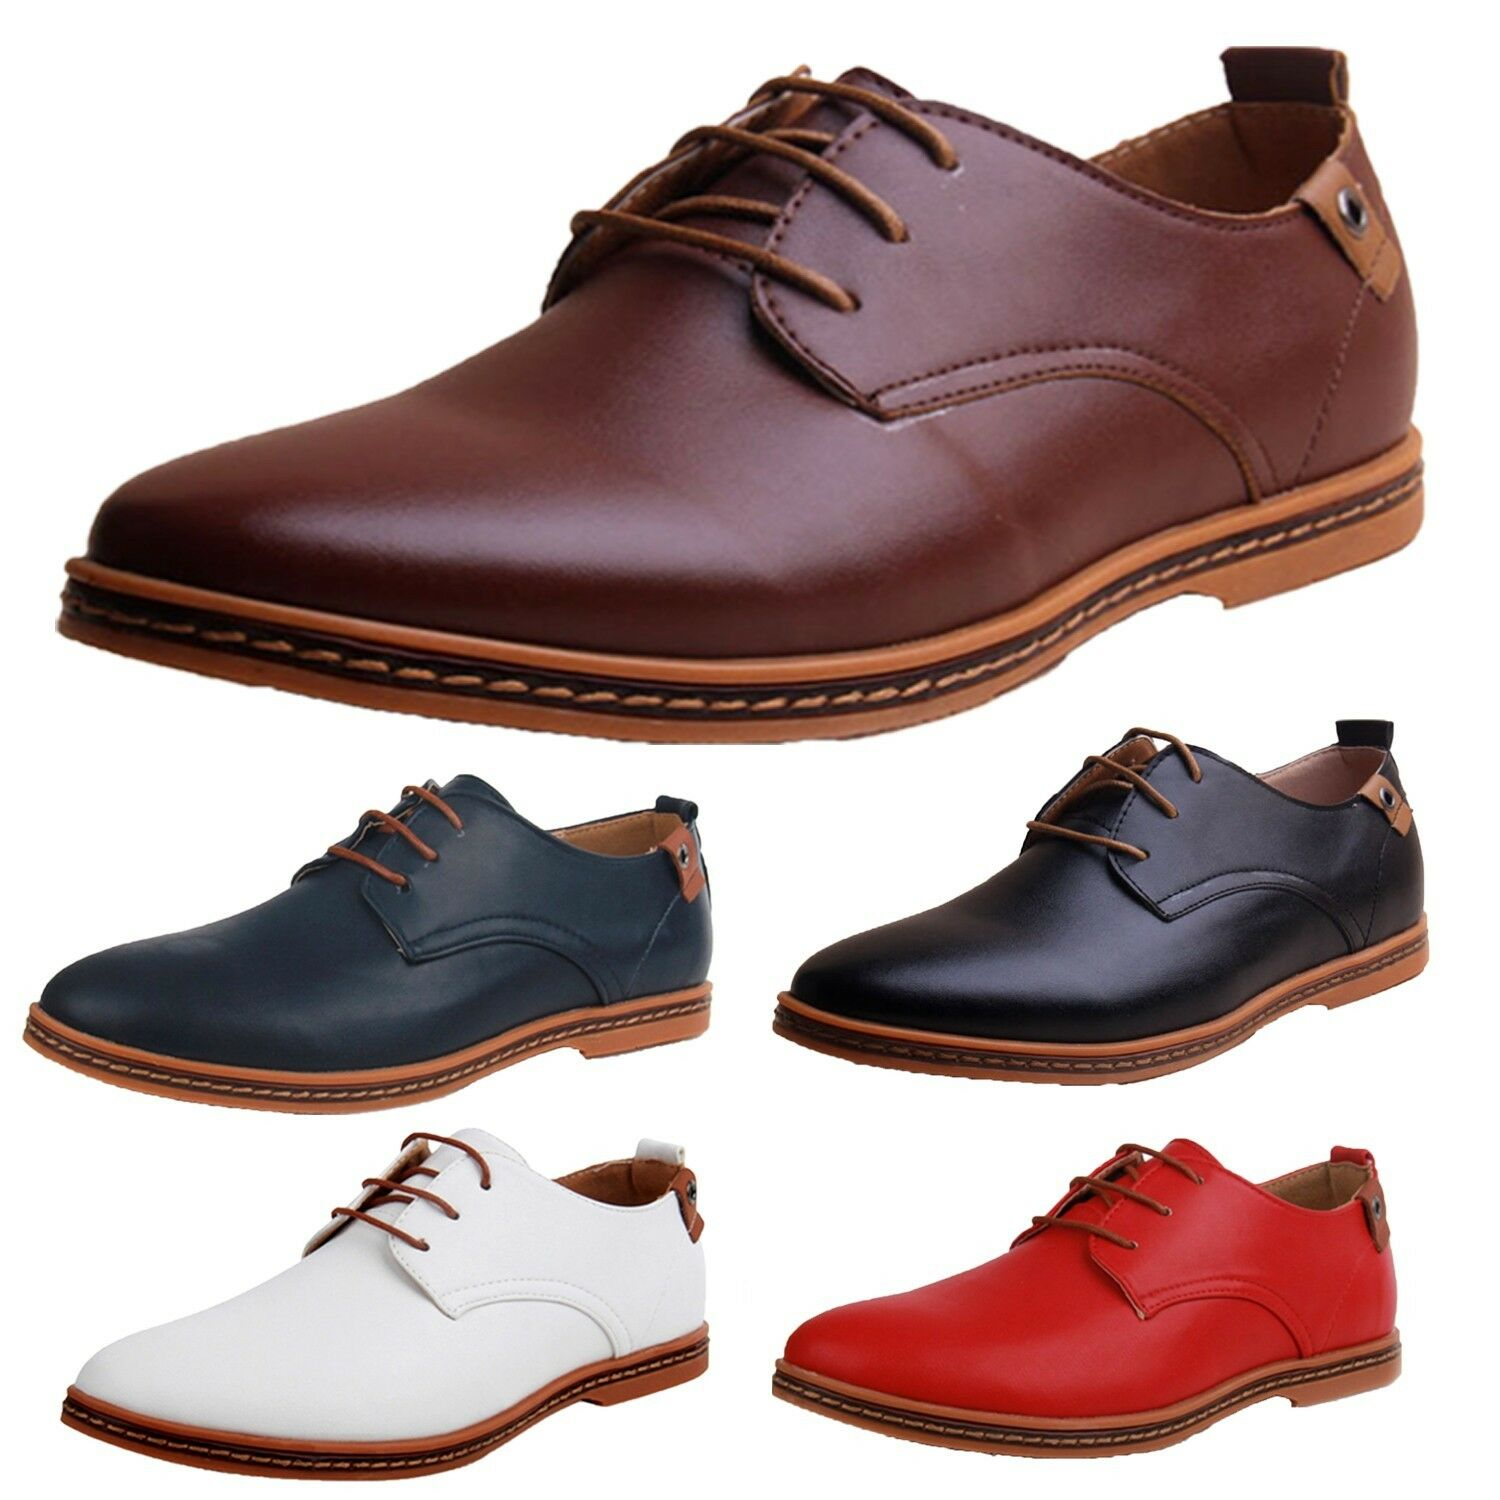 Mens Oxford shoes Italian style Smart casual British office wear Size 5-14 SSS